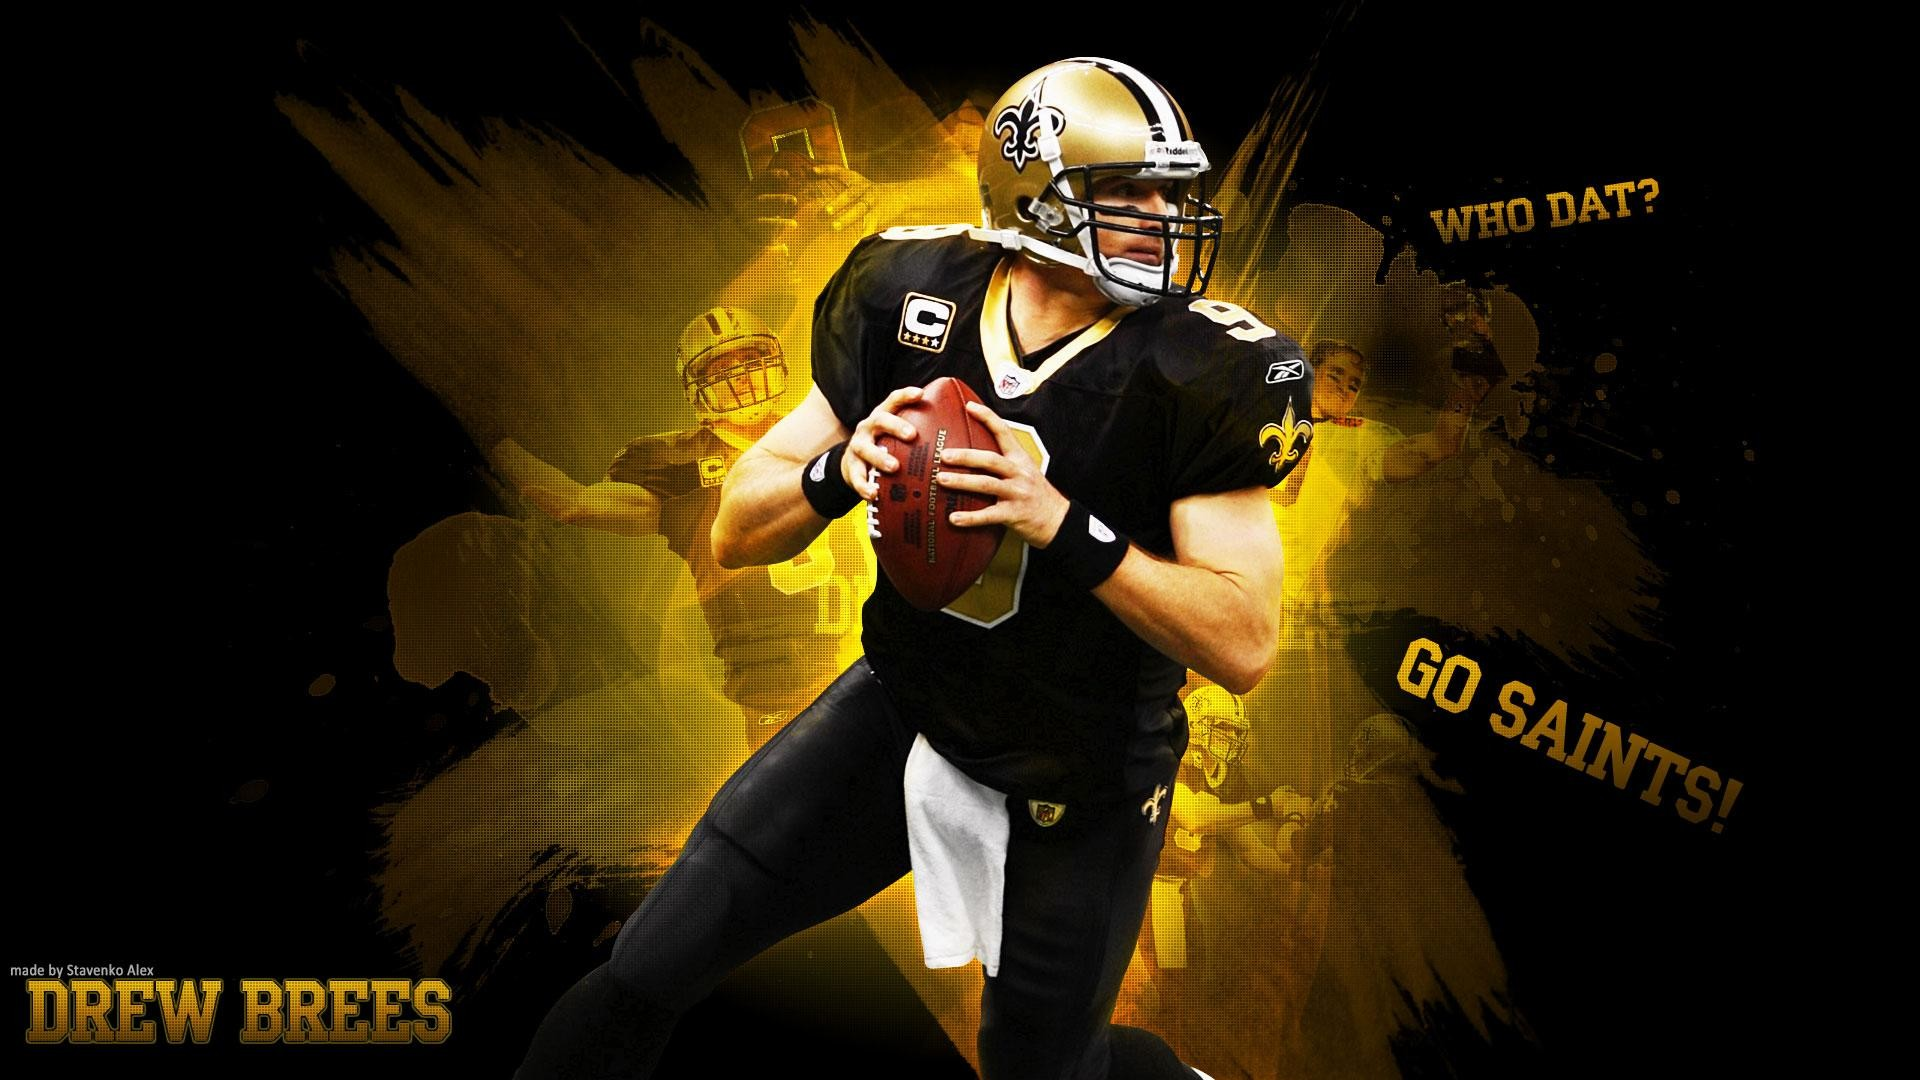 Drew Brees Wallpaper HD 71 images 1920x1080